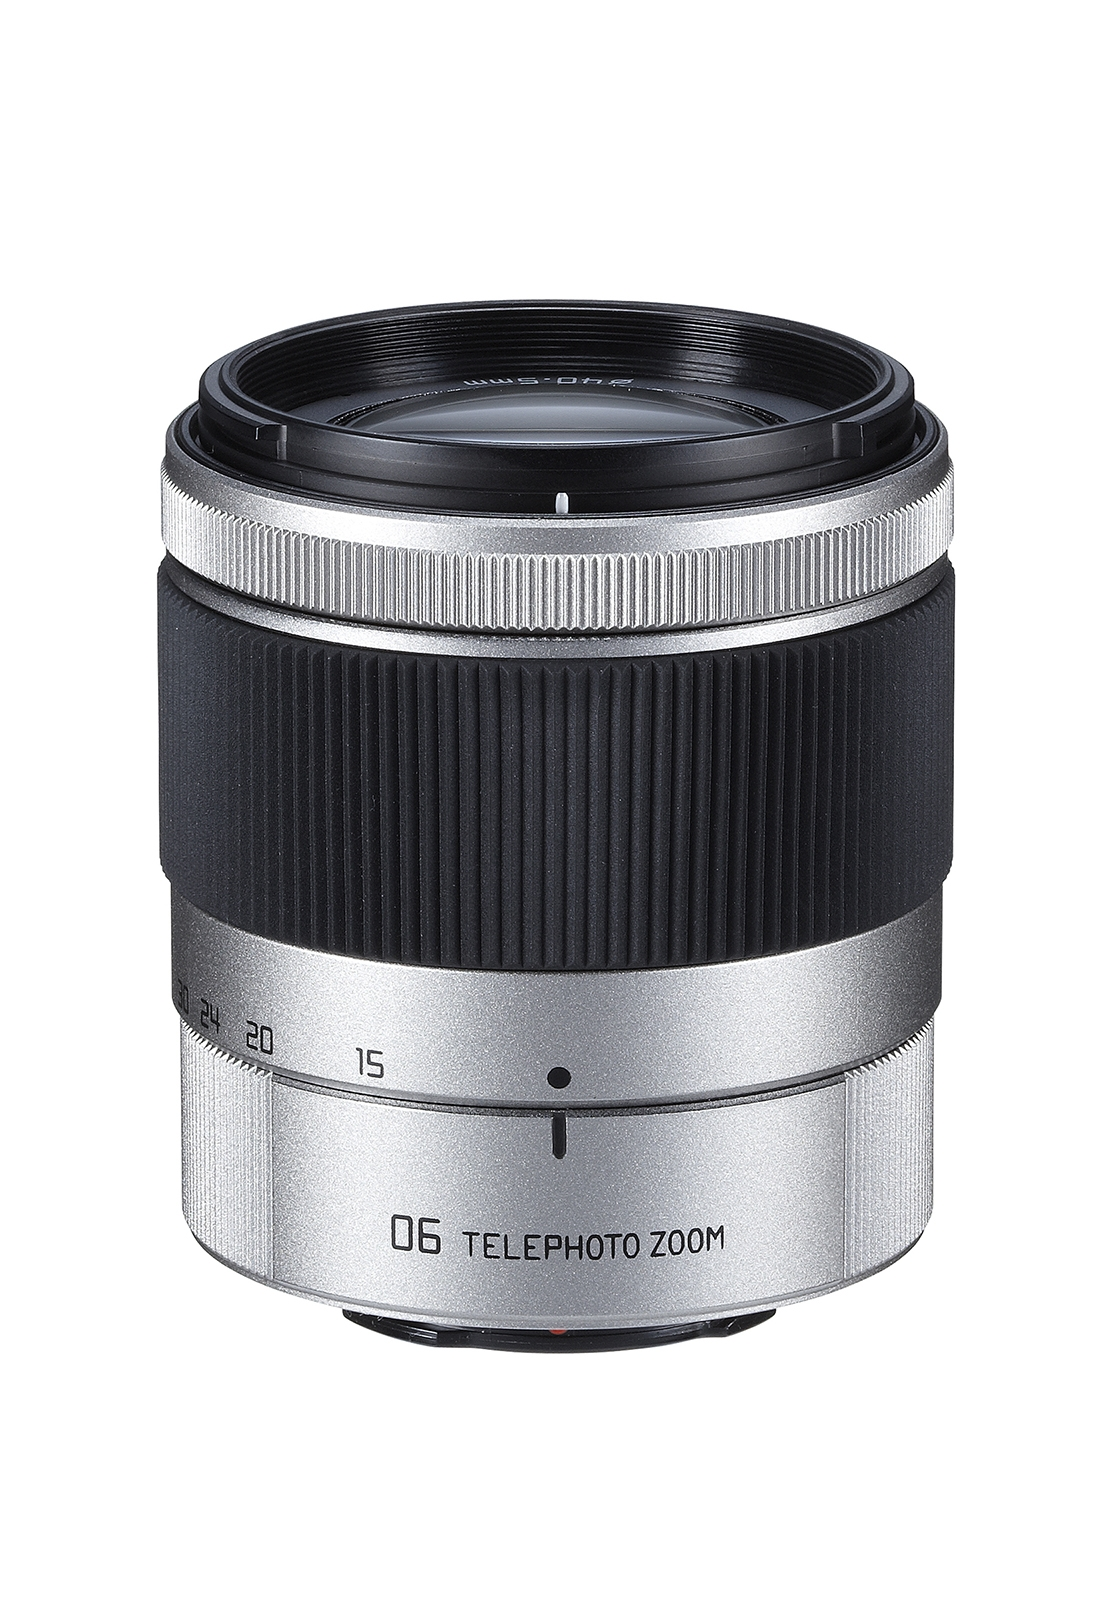 http://c758710.r10.cf2.rackcdn.com/img/press_images/PENTAX 06 TELEPHOTO ZOOM FOR Q-SERIES CAMERAS